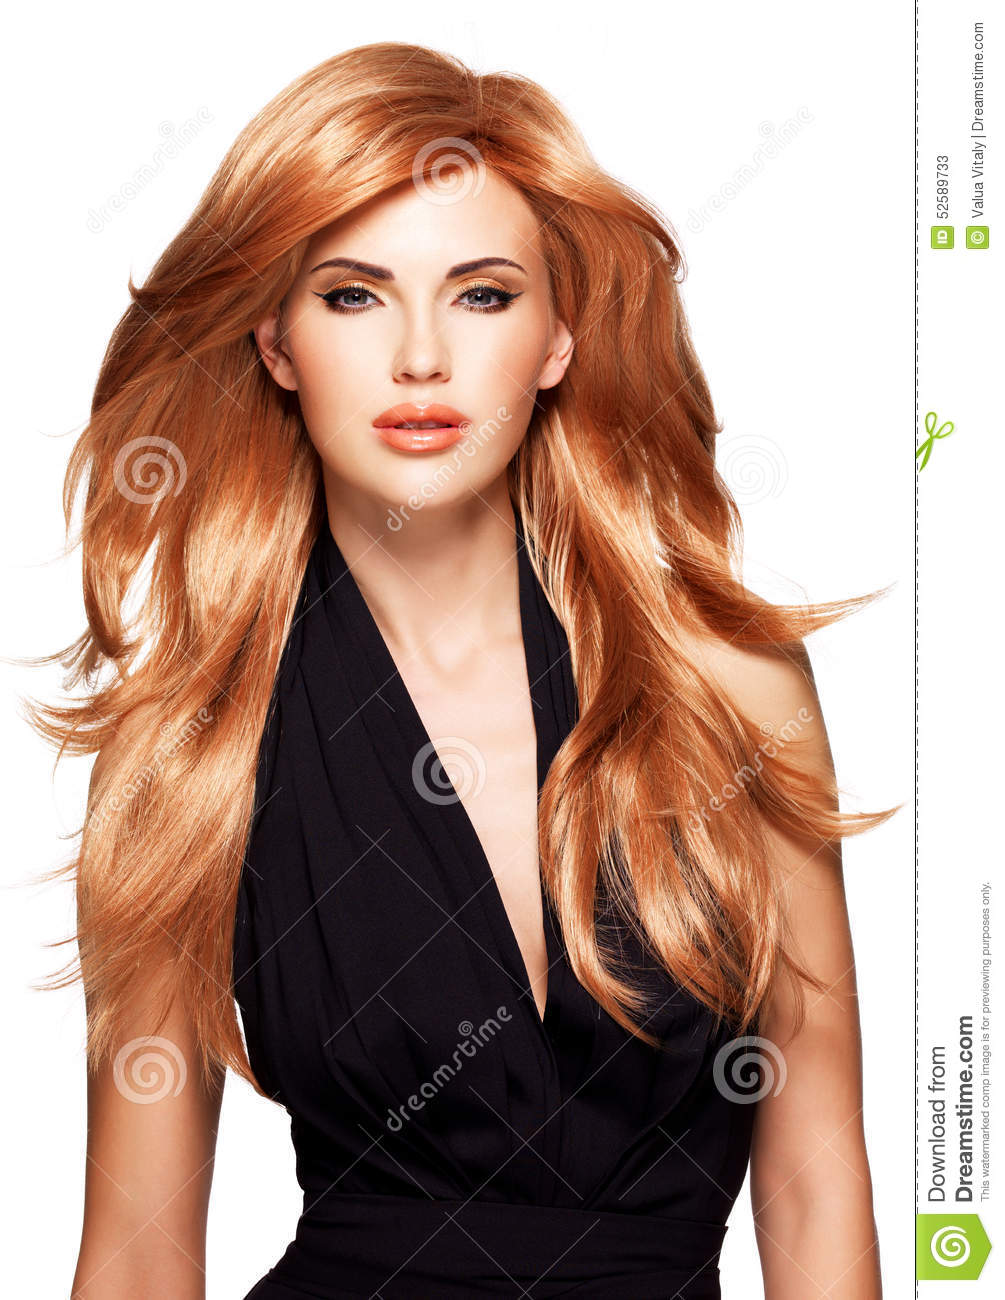 Black dress hairstyle - Beautiful Woman With Long Straight Red Hair In A Black Dress